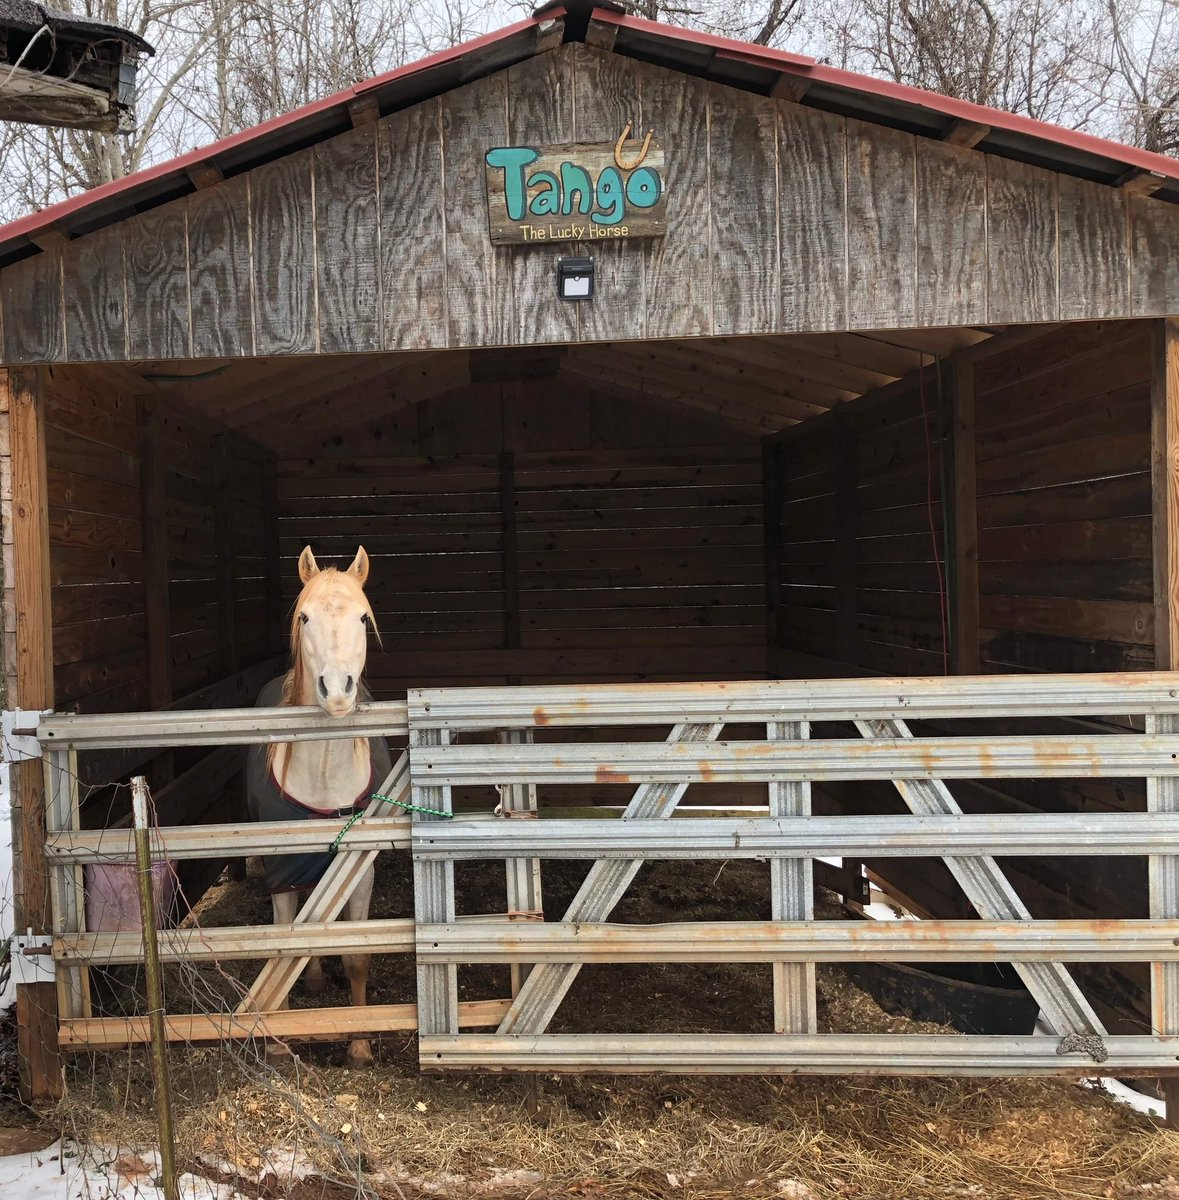 HORF UPDATE hes in the barn daddy built for him and is surviving snowmageddon, thanks to the gate dad rigged to keep Tangos dumbass in there